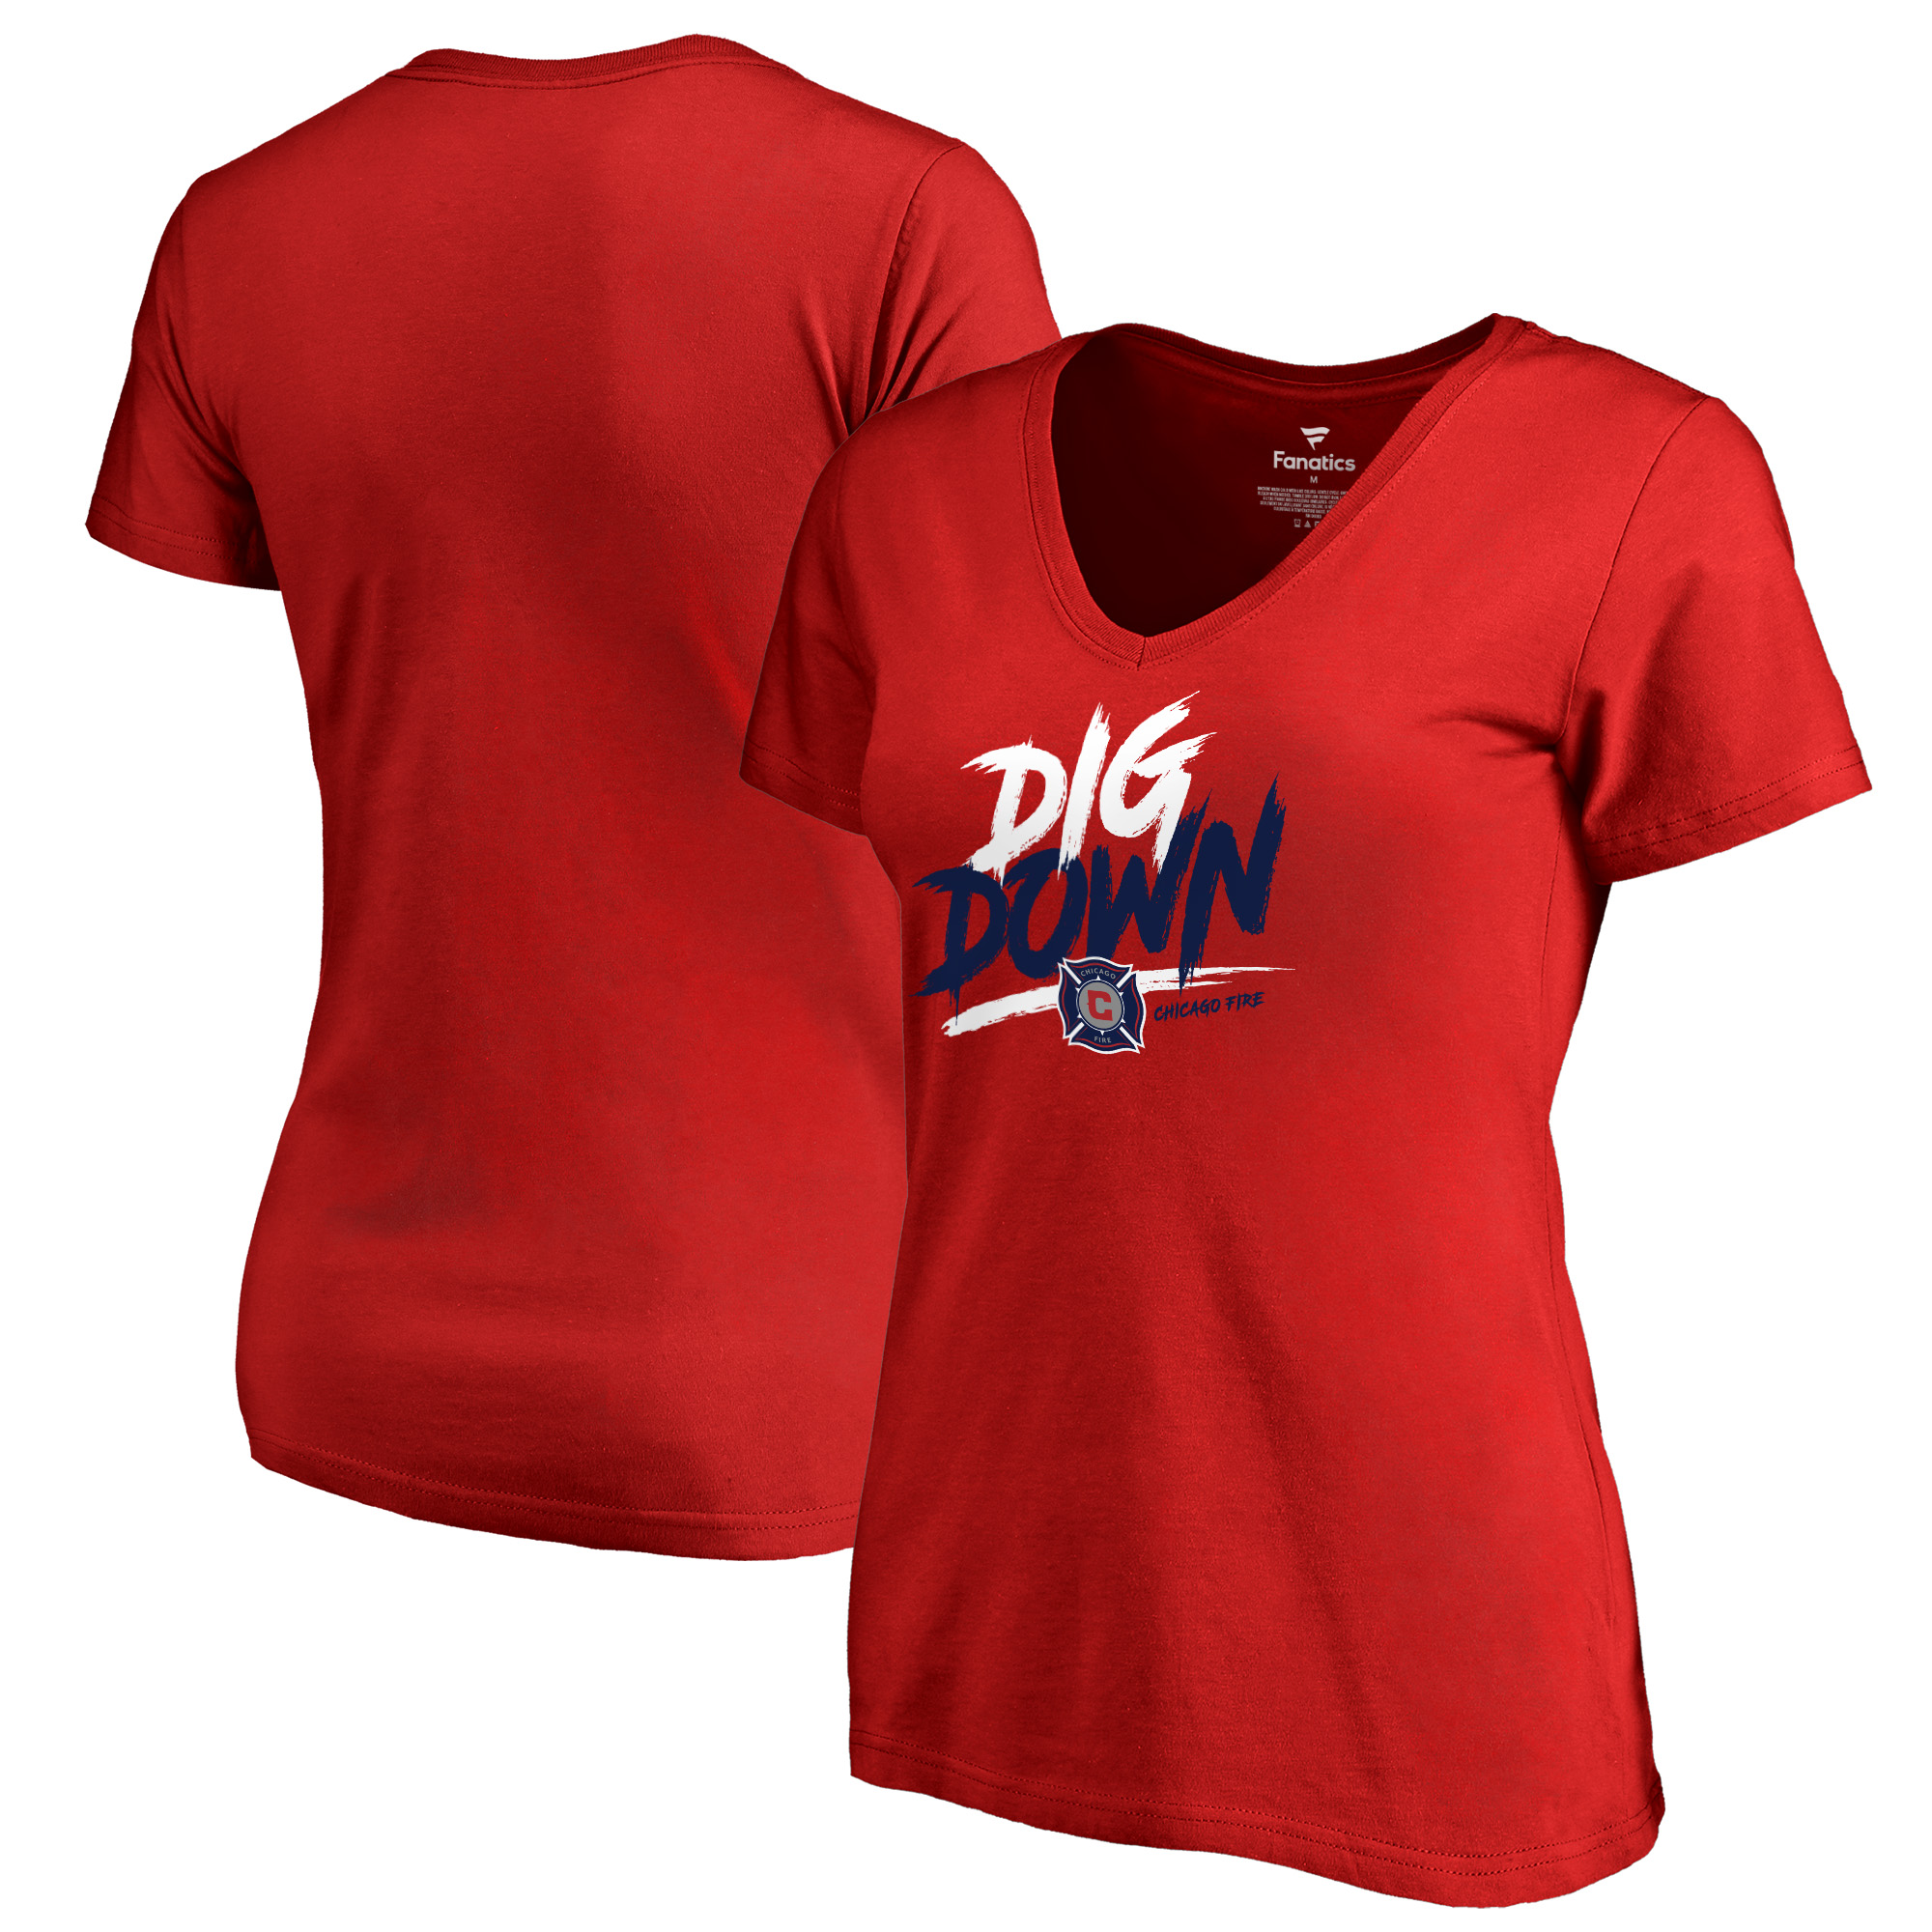 Chicago Fire Fanatics Branded Women's Dig Down V-Neck T-Shirt - Red